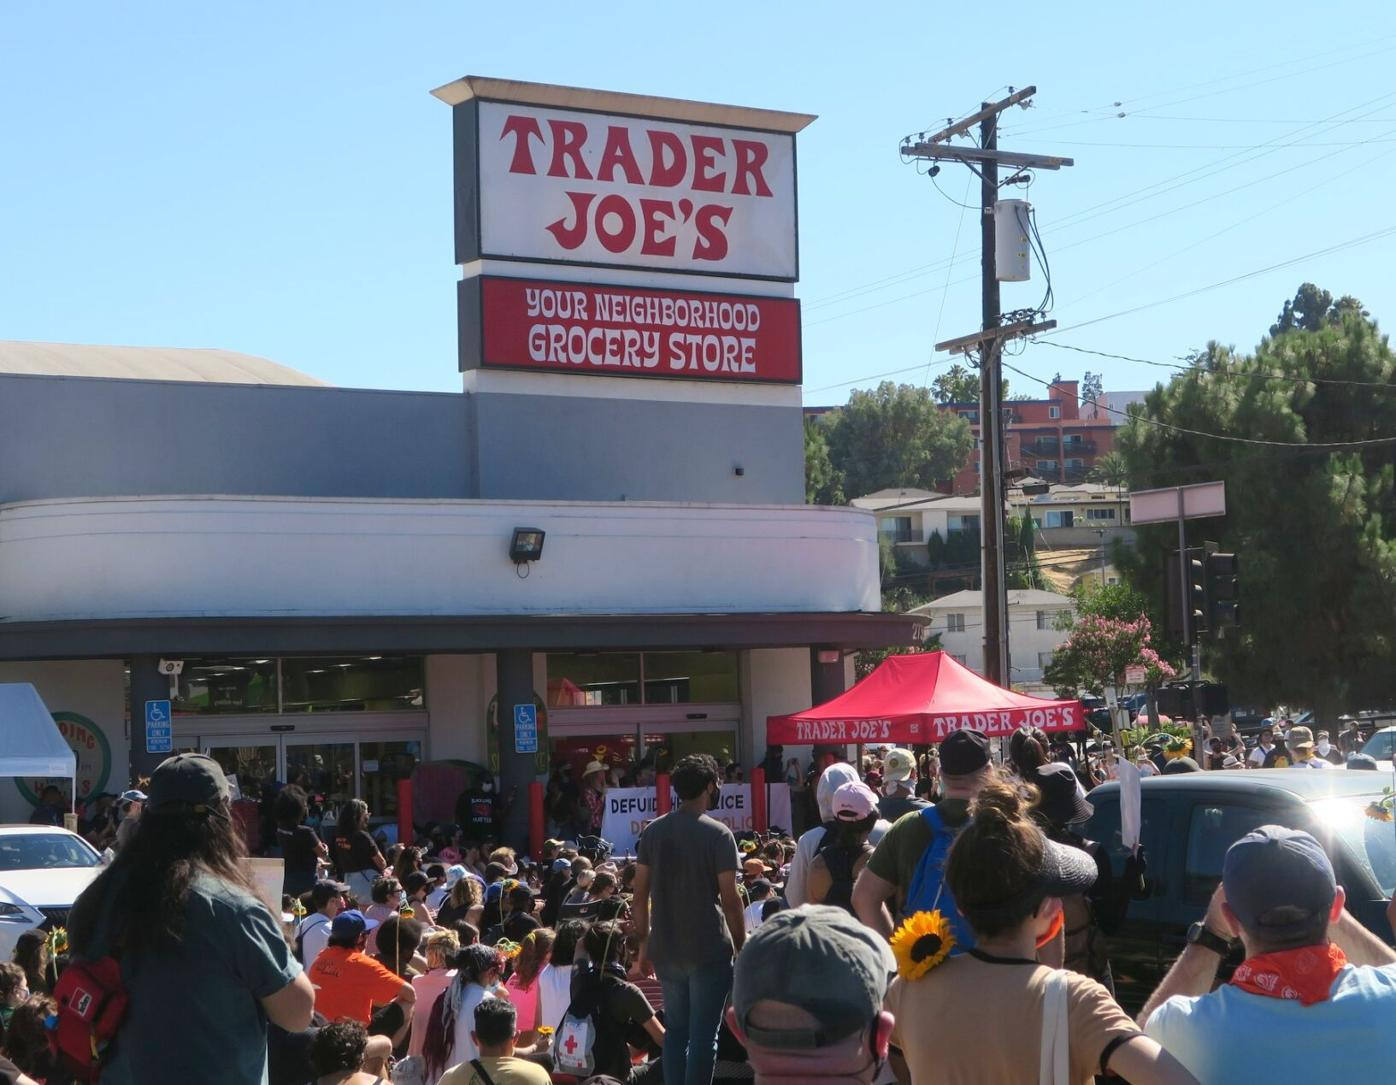 Mely Corado Police brutality protest in silver lake trader joes parking lot 7-9-2020 4-40-36 PM.JPG